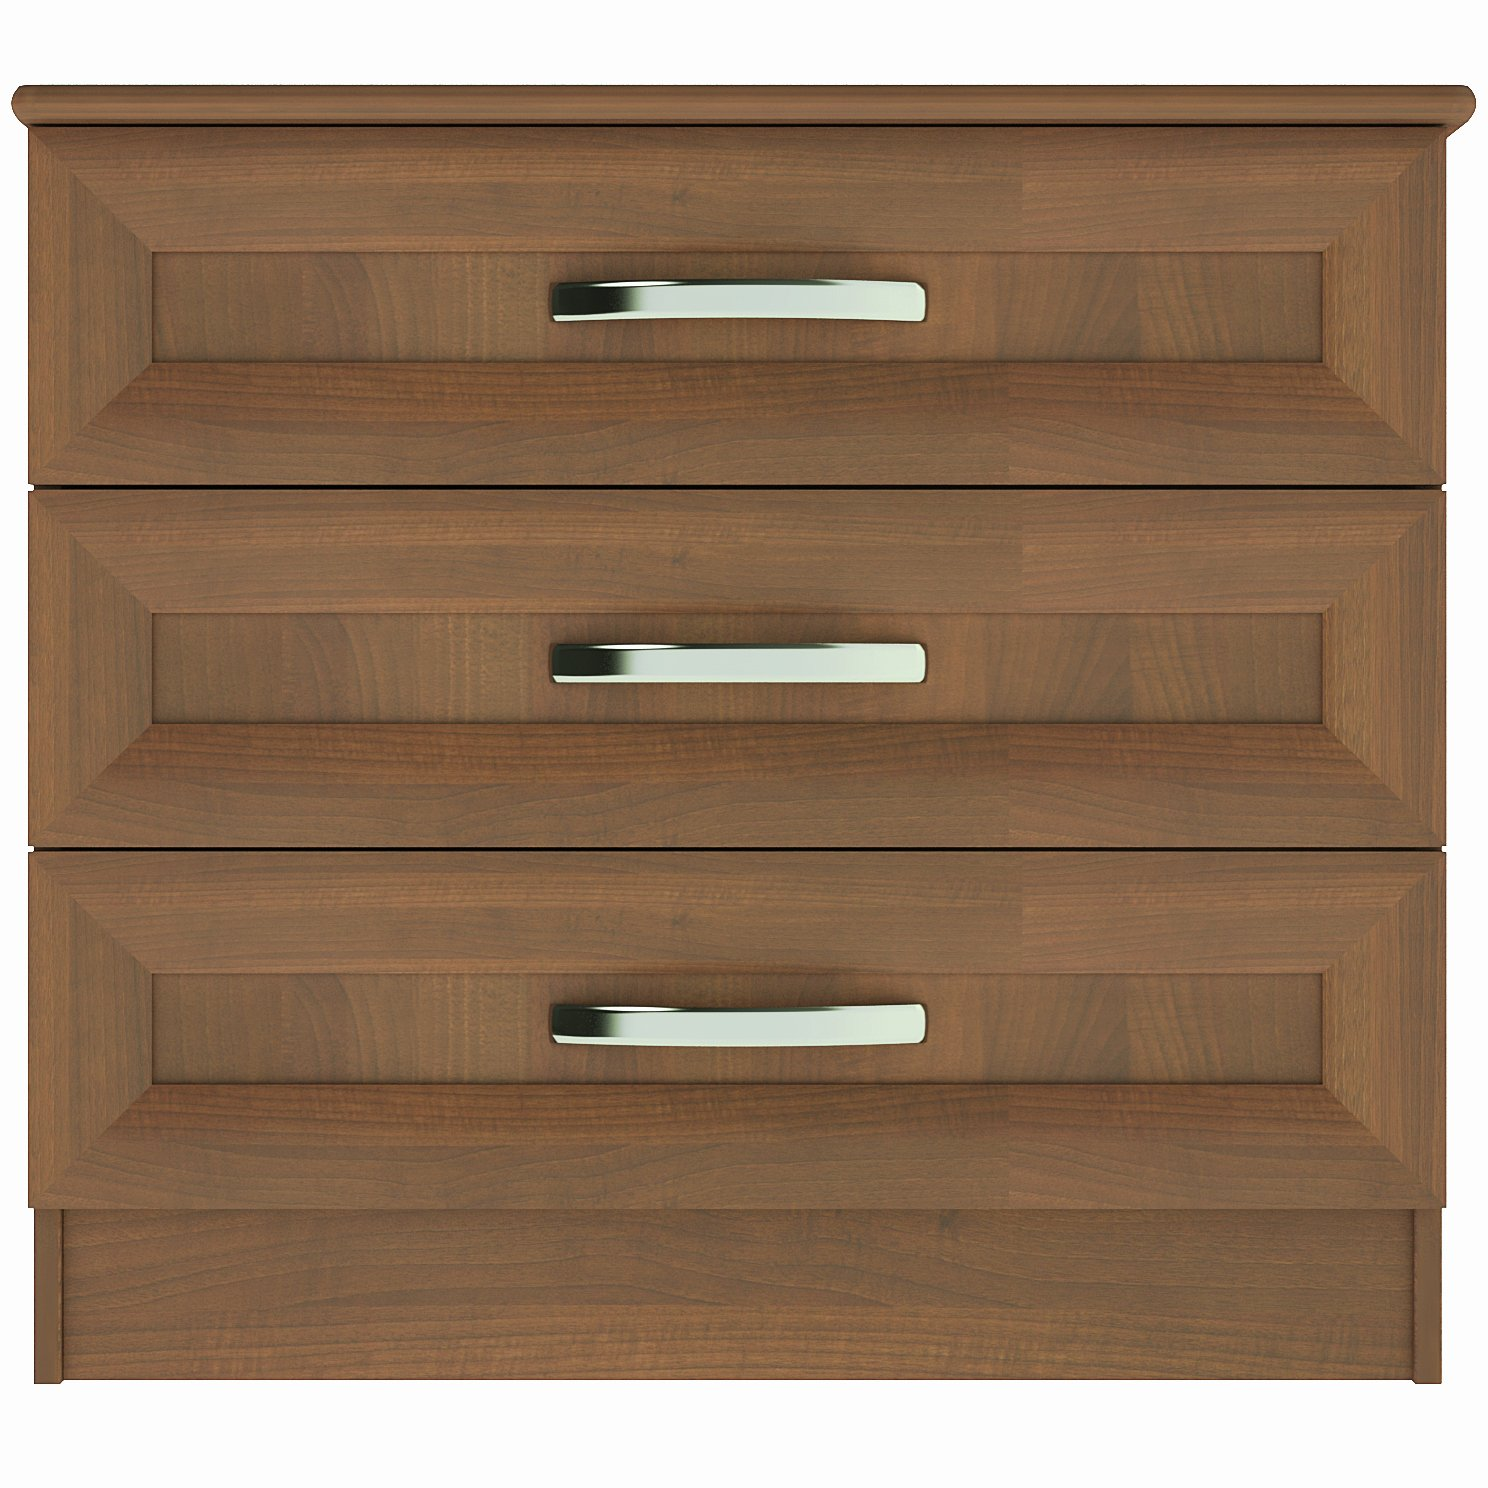 Hartland Chest of 3 Drawers